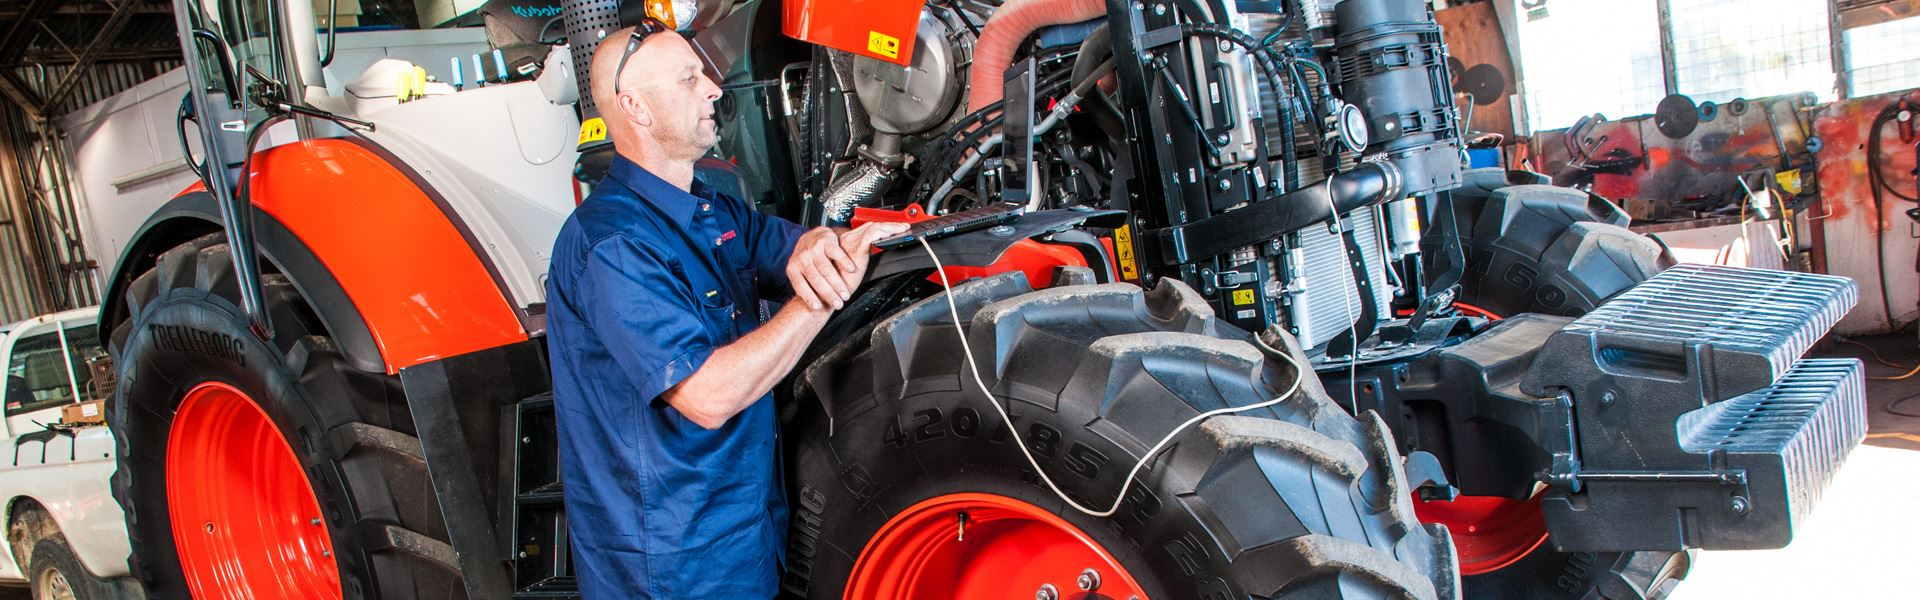 We service and repair all farm machinery